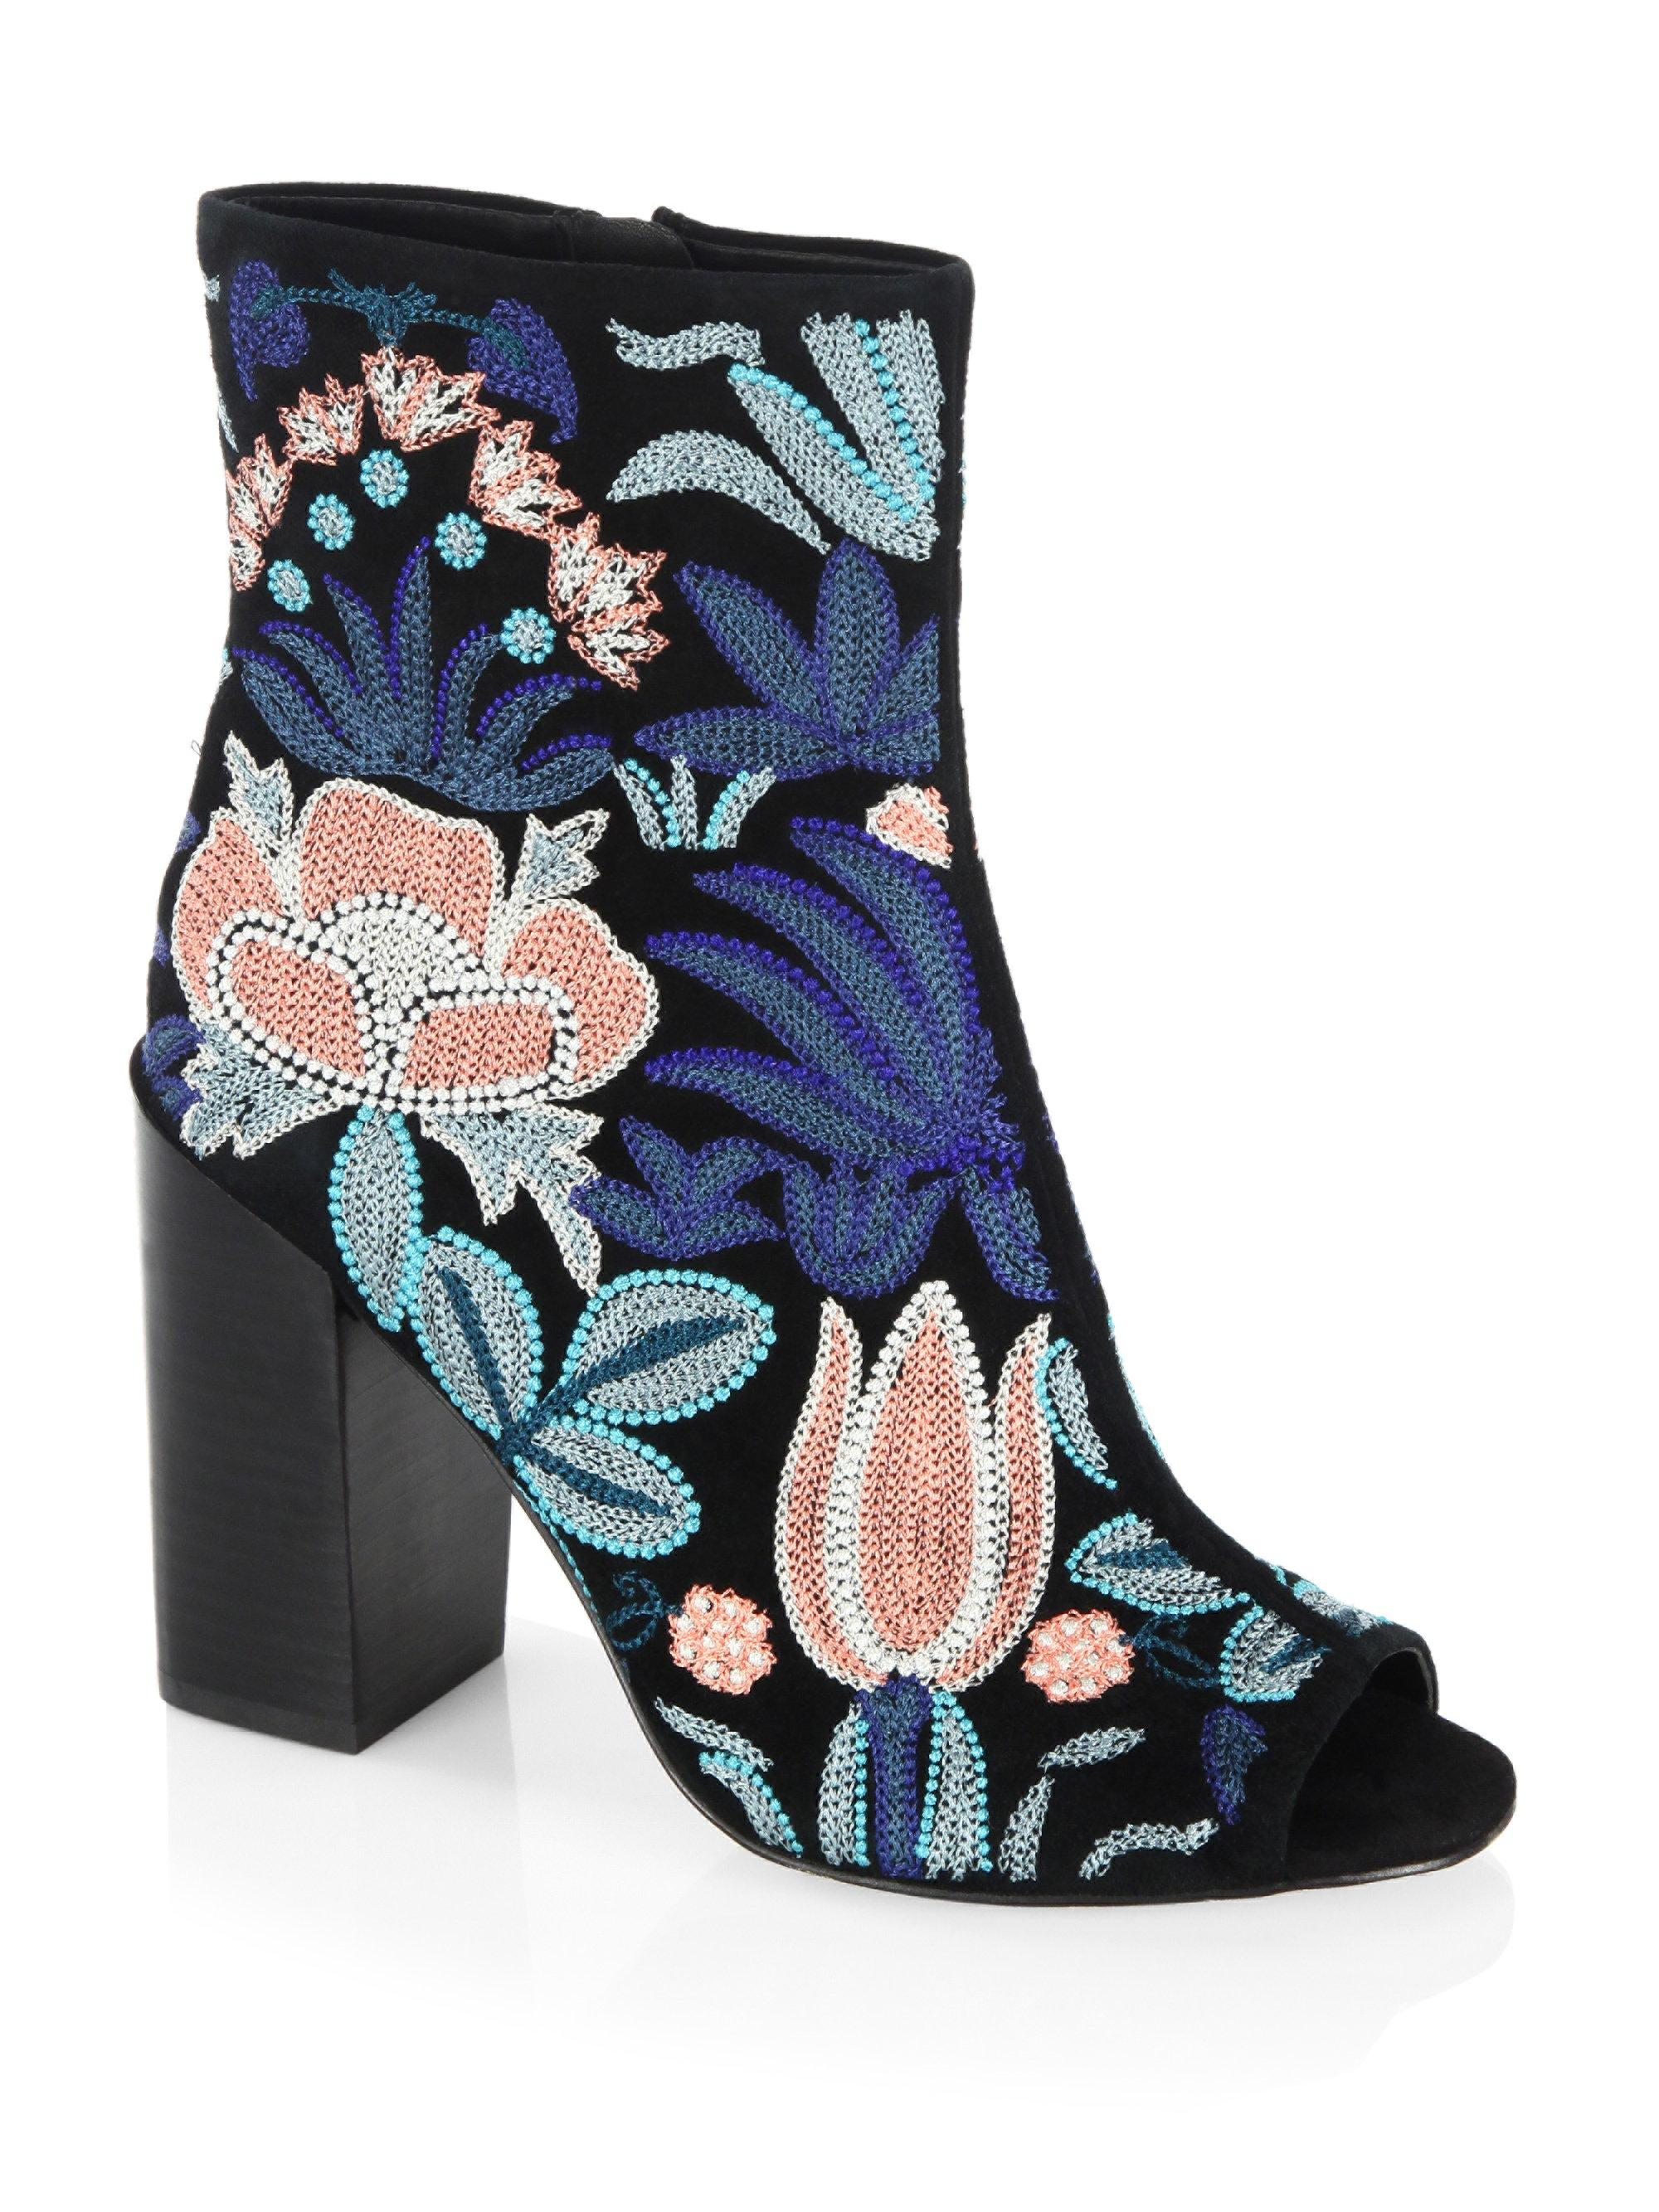 Rebecca Minkoff Suede Embroidered Boots enjoy cheap online sale for sale marketable cheap online free shipping Inexpensive popular cheap price R65Vxj94